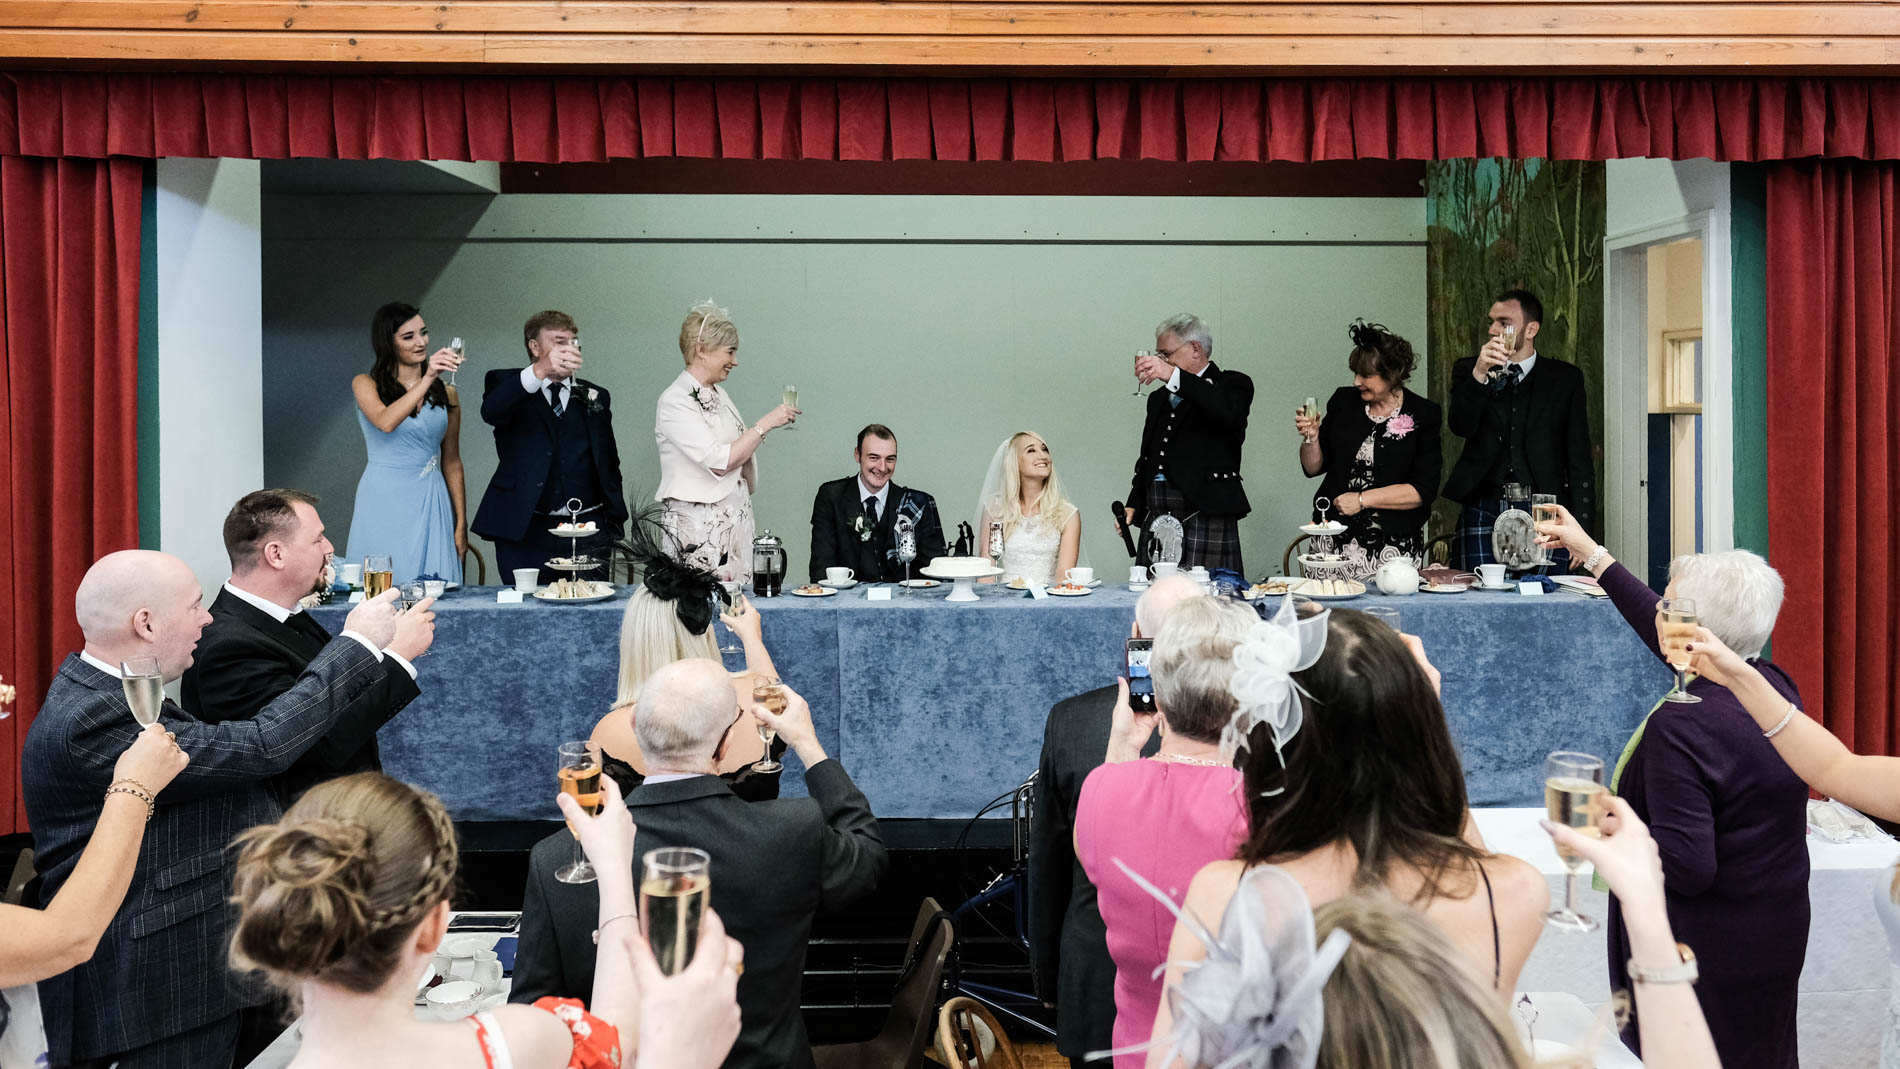 A colour photograph of the bridal party and wedding guests toasting the bride and groom during a wedding reception at Saint Andrew's Church, Clermiston, Edinburgh